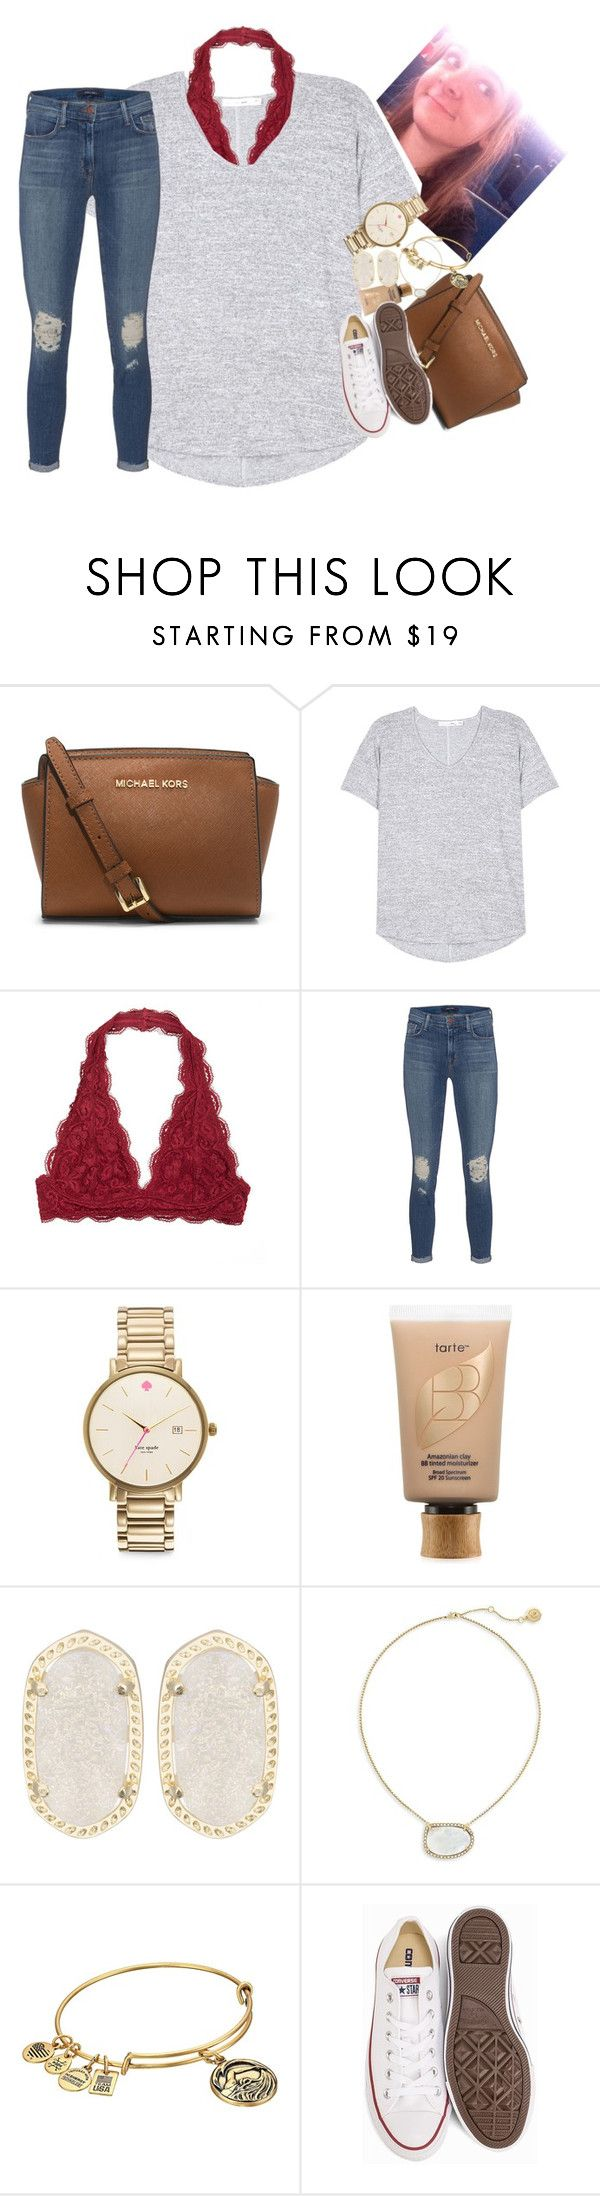 """""""@ THE CONCERT!!!"""" by ellaswiftie13 ❤ liked on Polyvore featuring MICHAEL Michael Kors, rag & bone, J Brand, Kate Spade, tarte, Kendra Scott, Louise et Cie, Alex and Ani and Converse"""